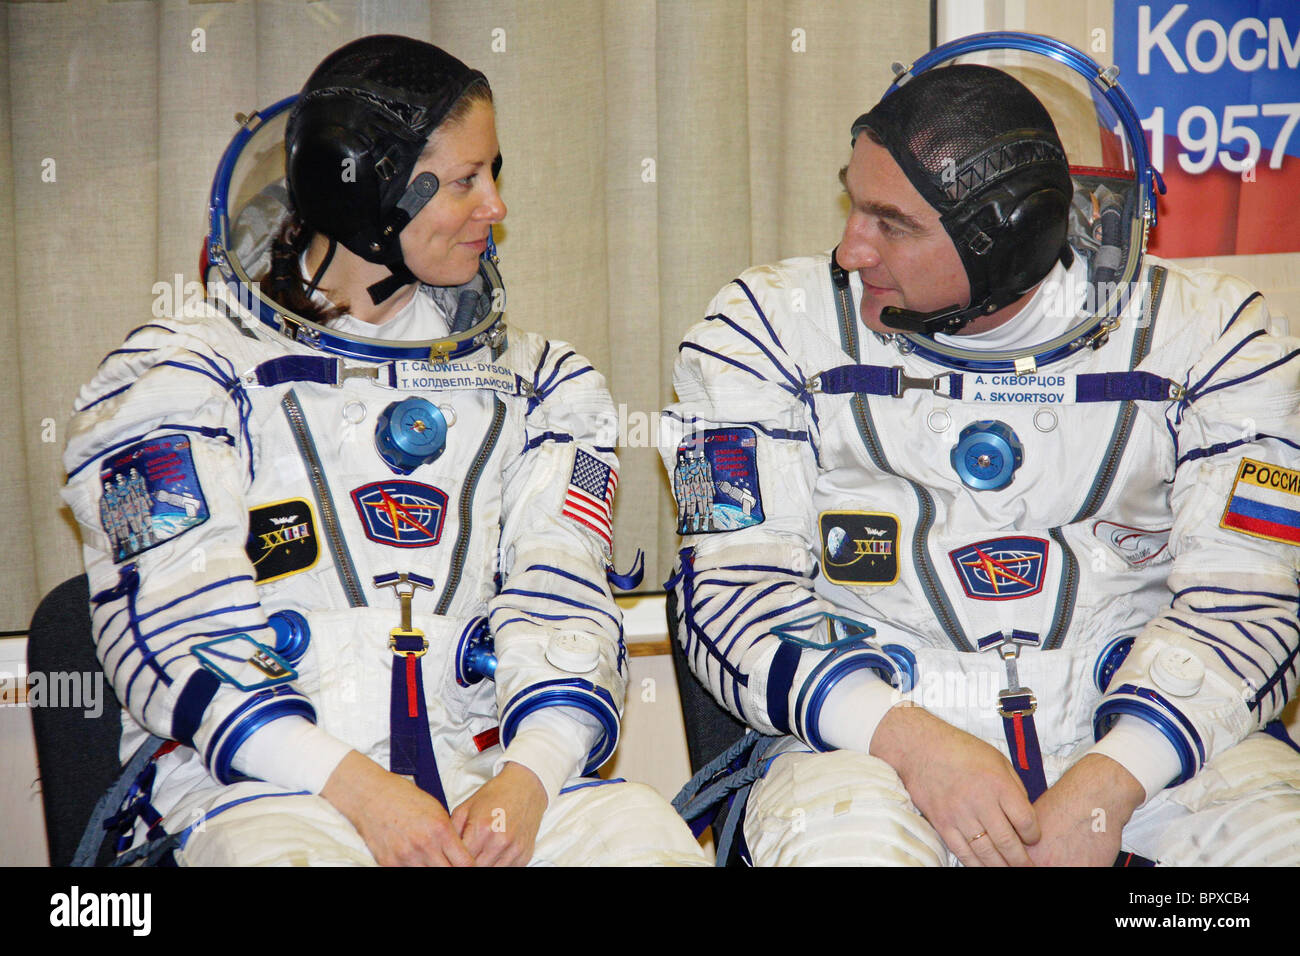 ISS Expedition 23 crew members prepare for flight - Stock Image